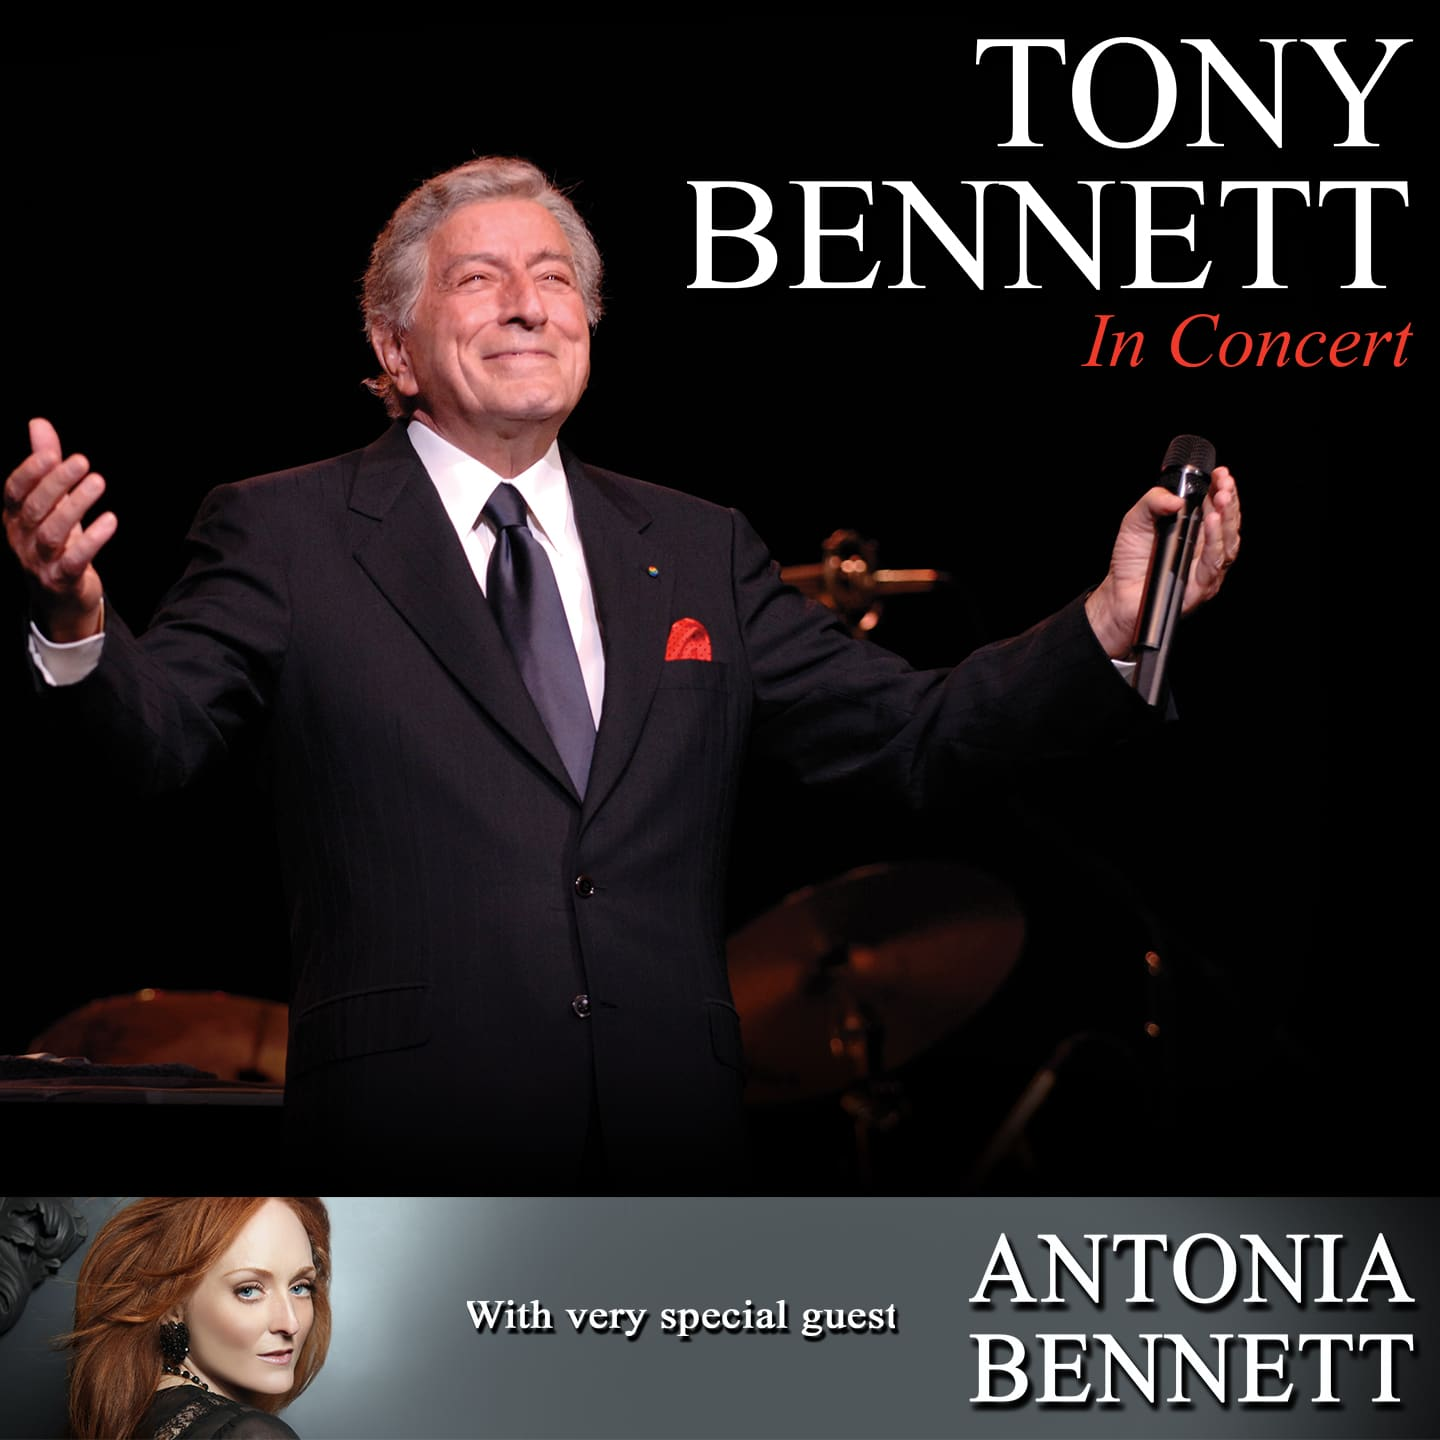 Tony-Bennett_1440_NEW_OPTIM.jpg